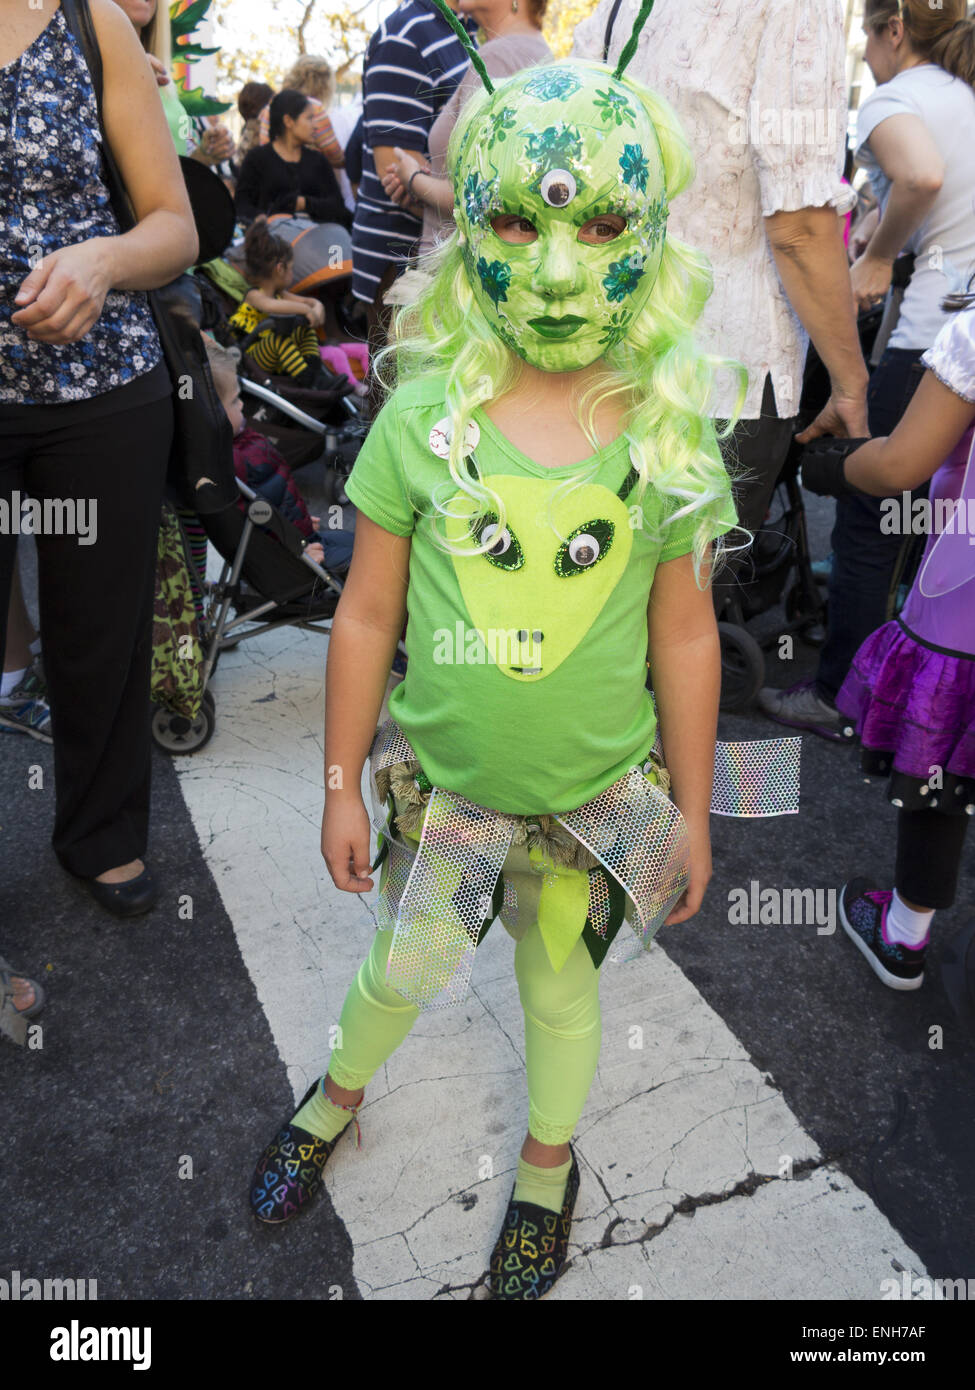 Girl dressed as Little Green Man or Martian at The Ragamuffin Parade in Bay Ridge in Brooklyn, NY. - Stock Image